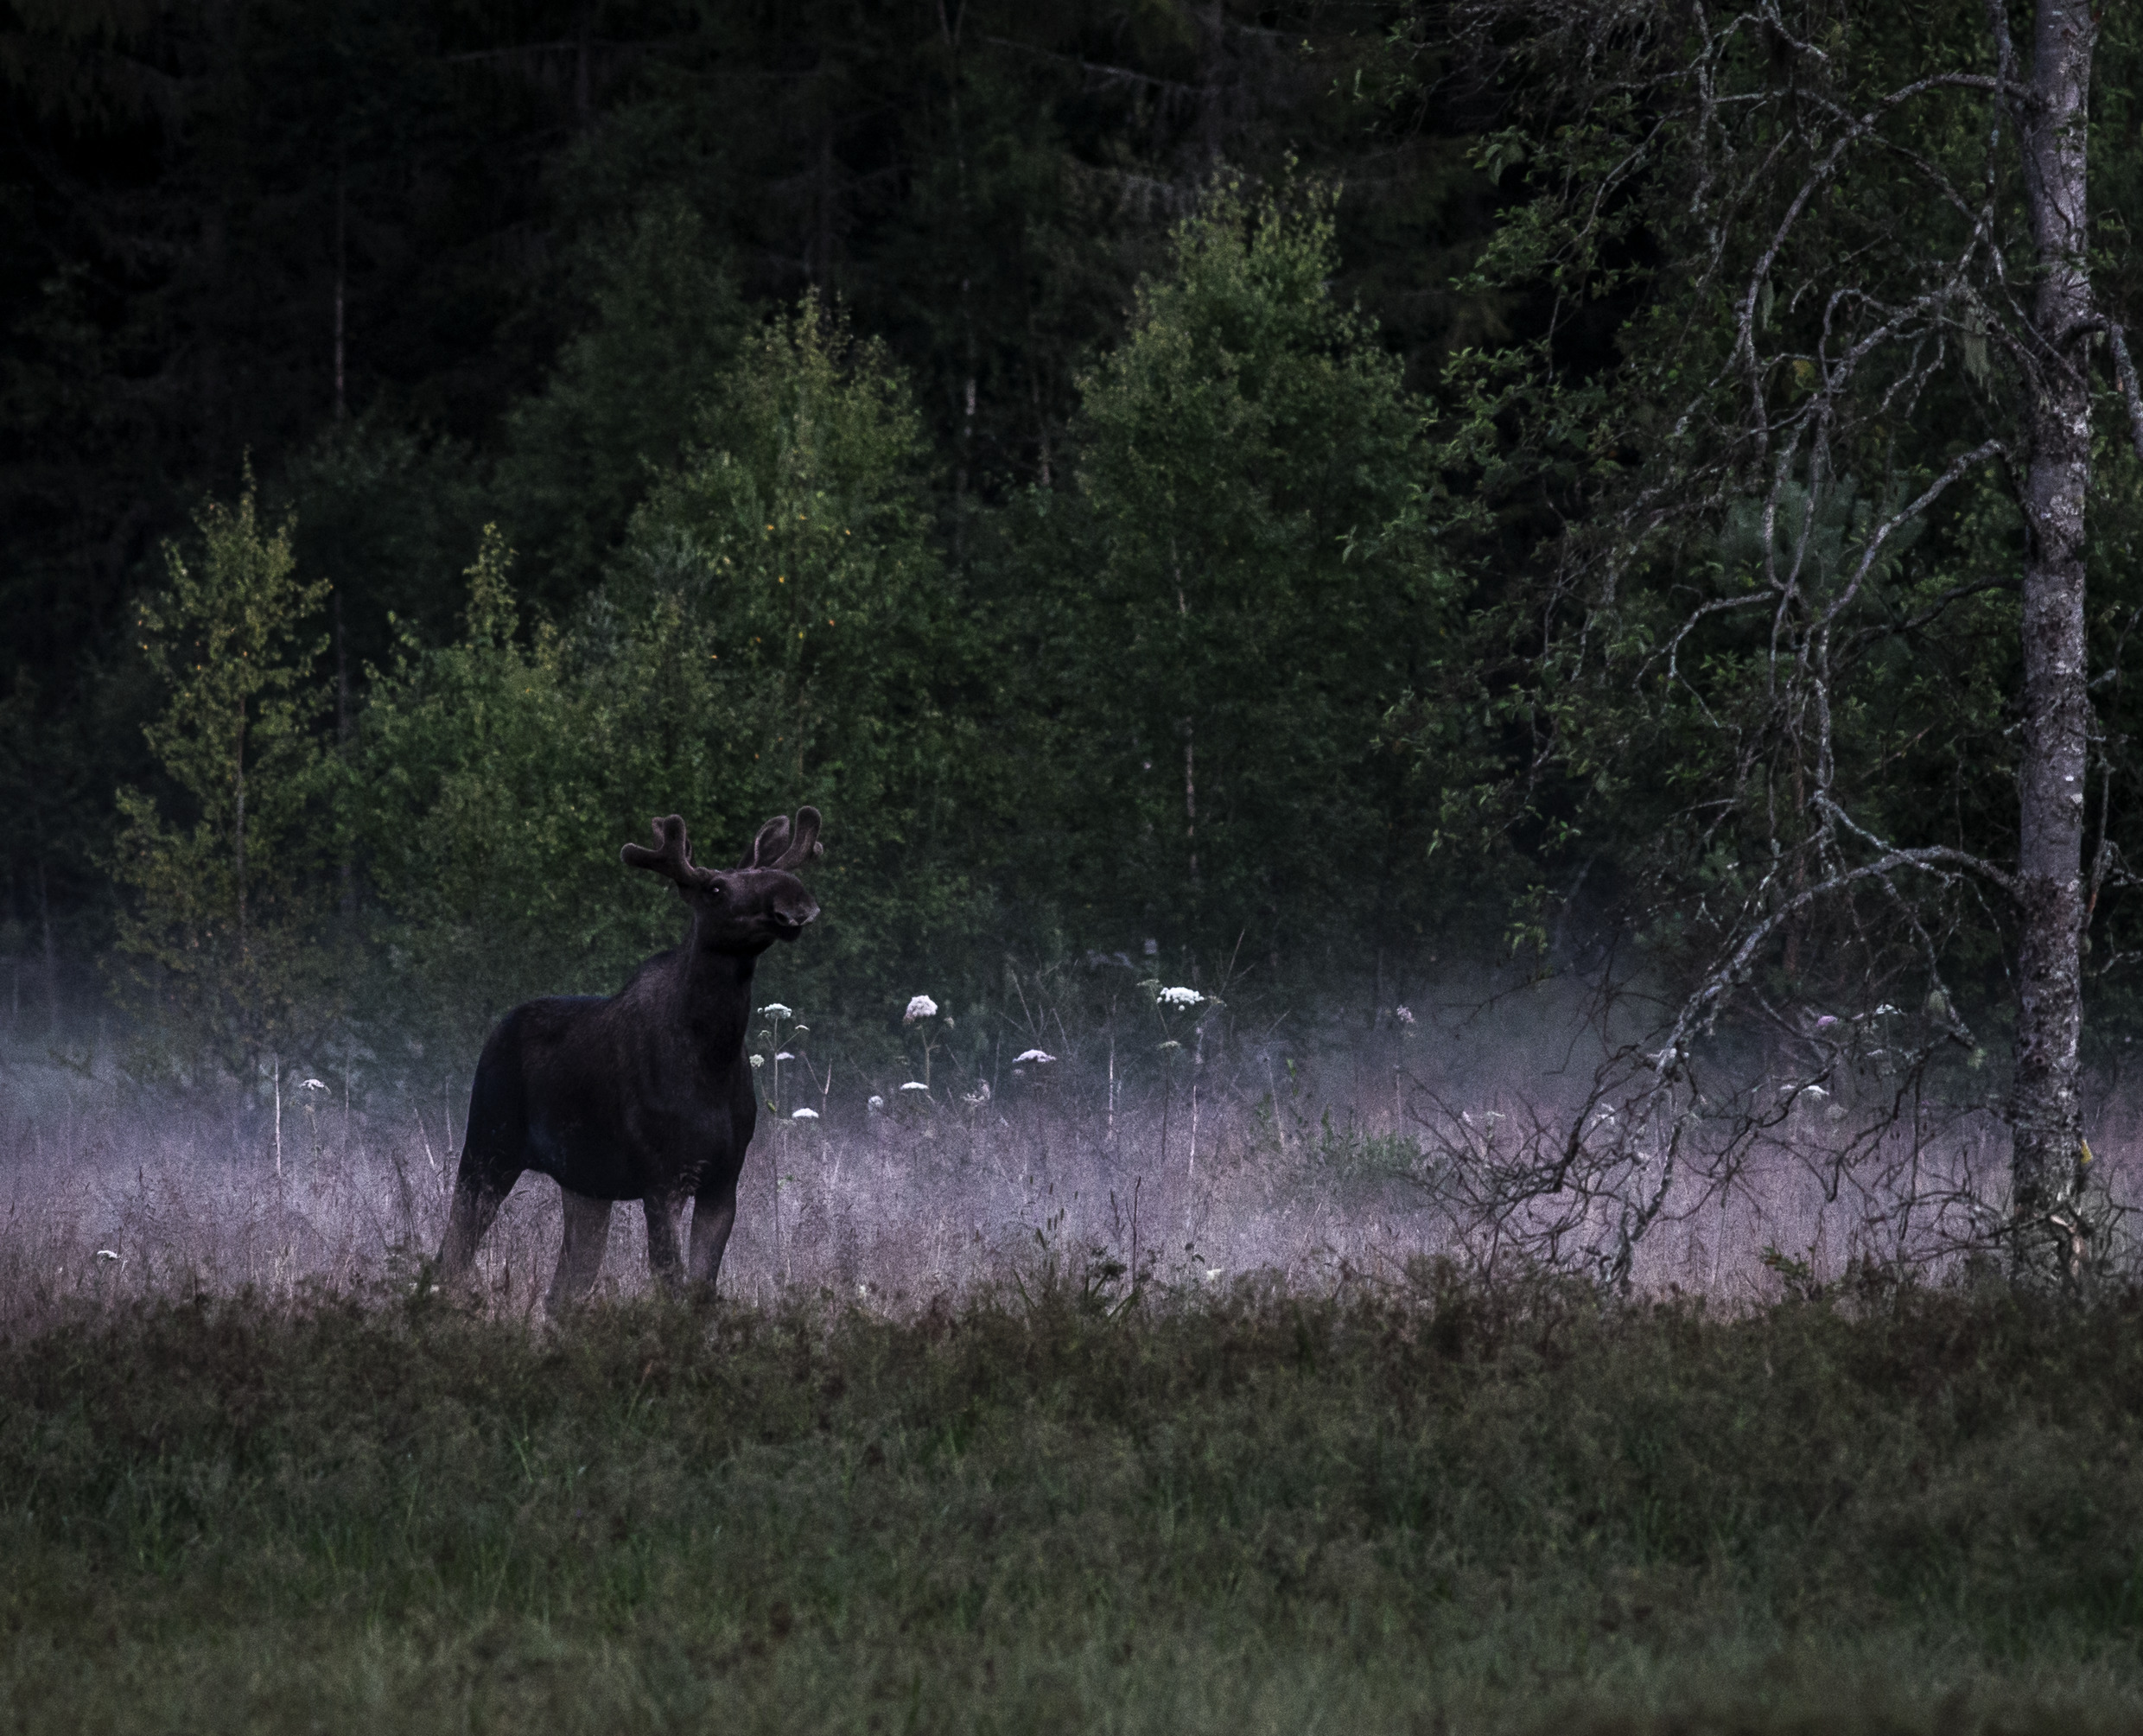 anders_tedeholm-moose_at_dawn-5540.jpg